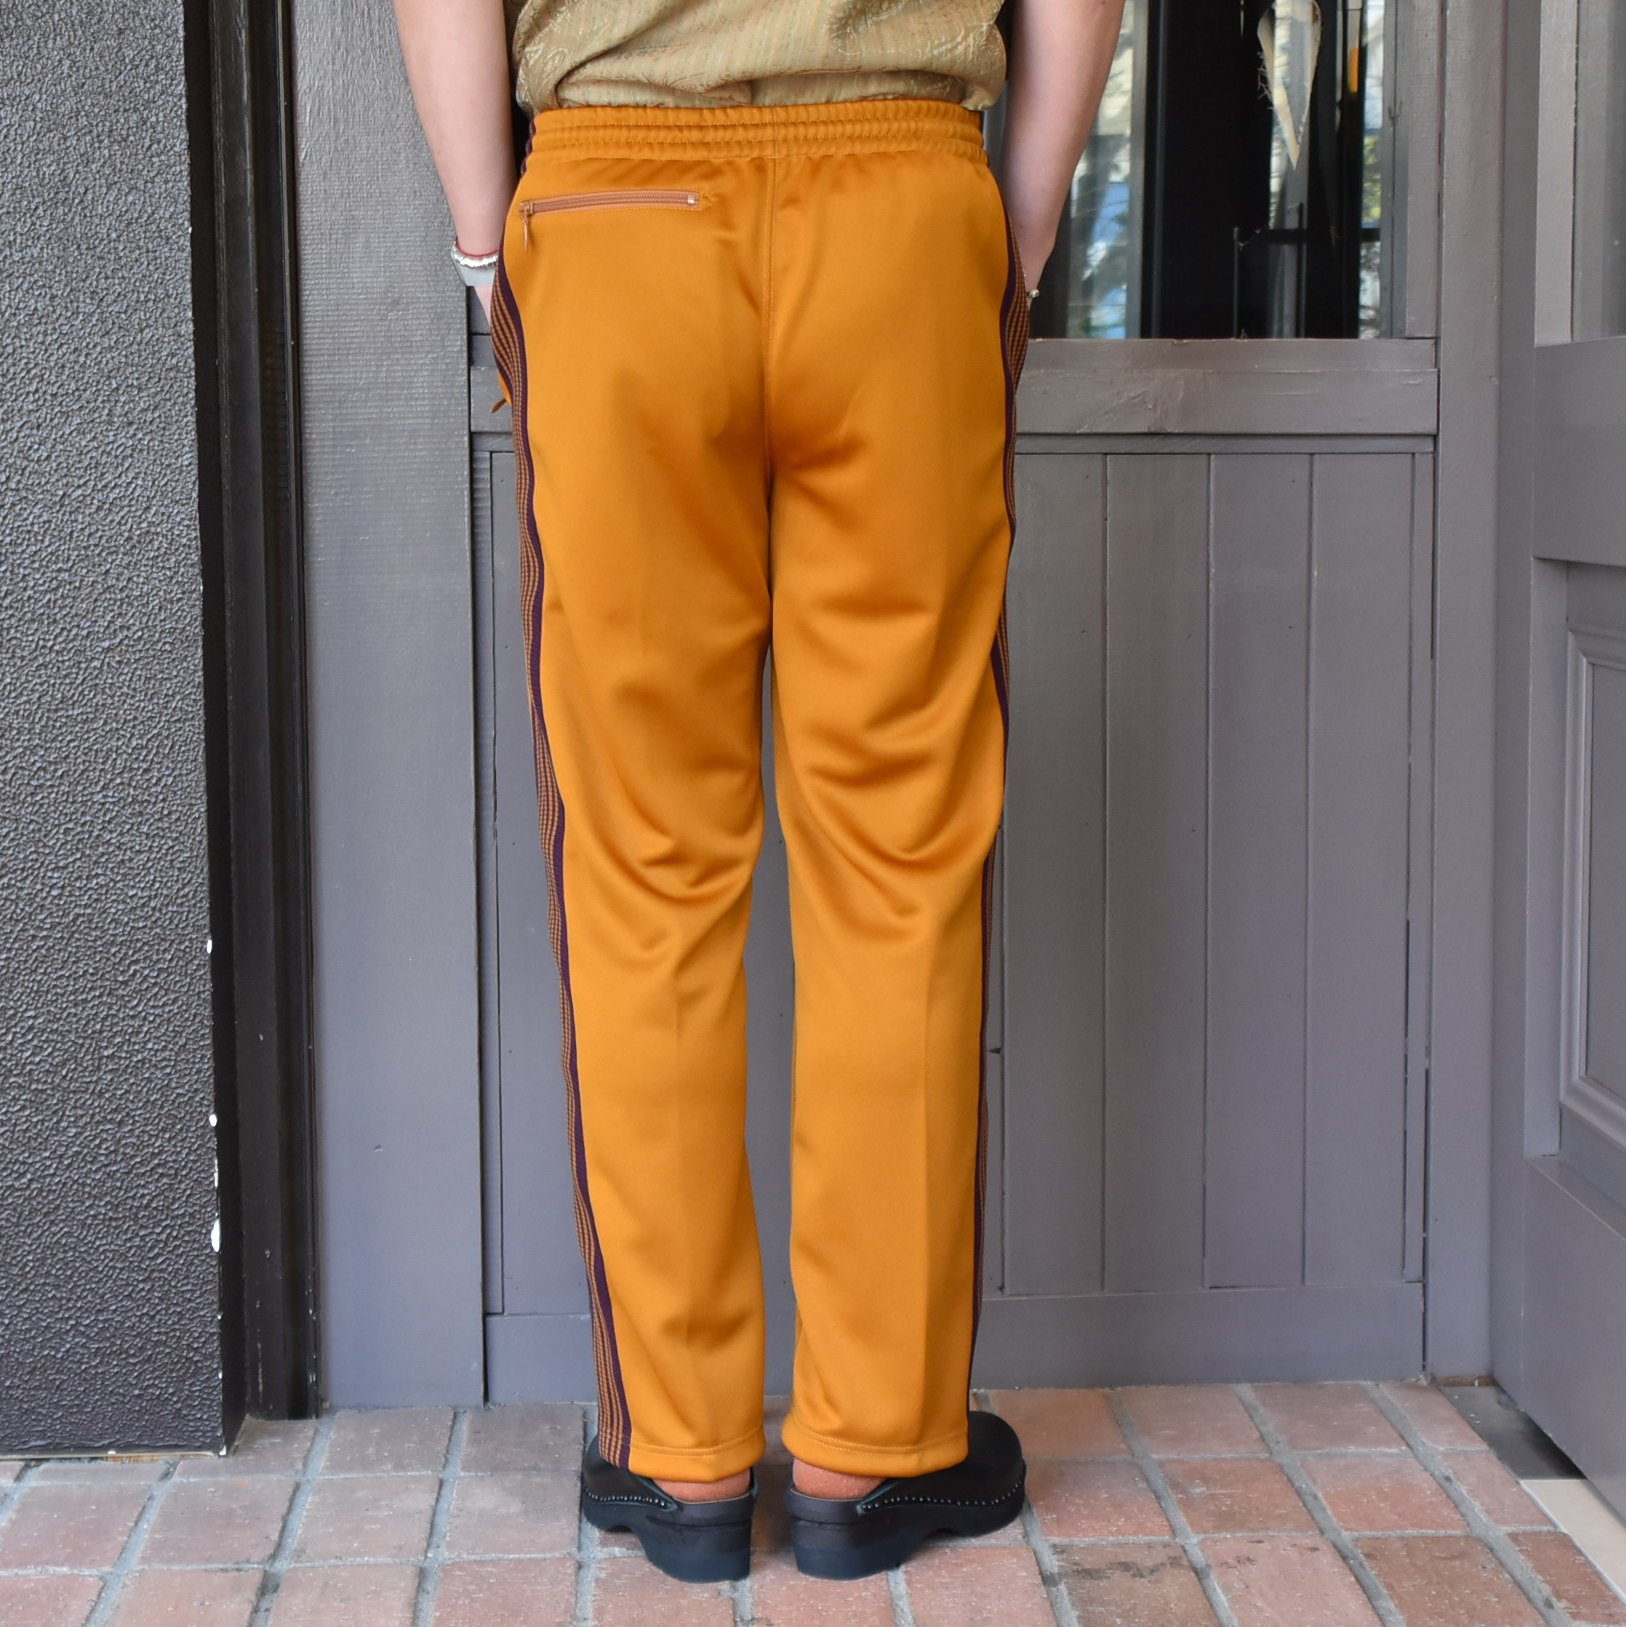 [2021]NEEDLES(ニードルス) TRACK PANT POLY SMOOTH -MUSTARD- #IN181(7)